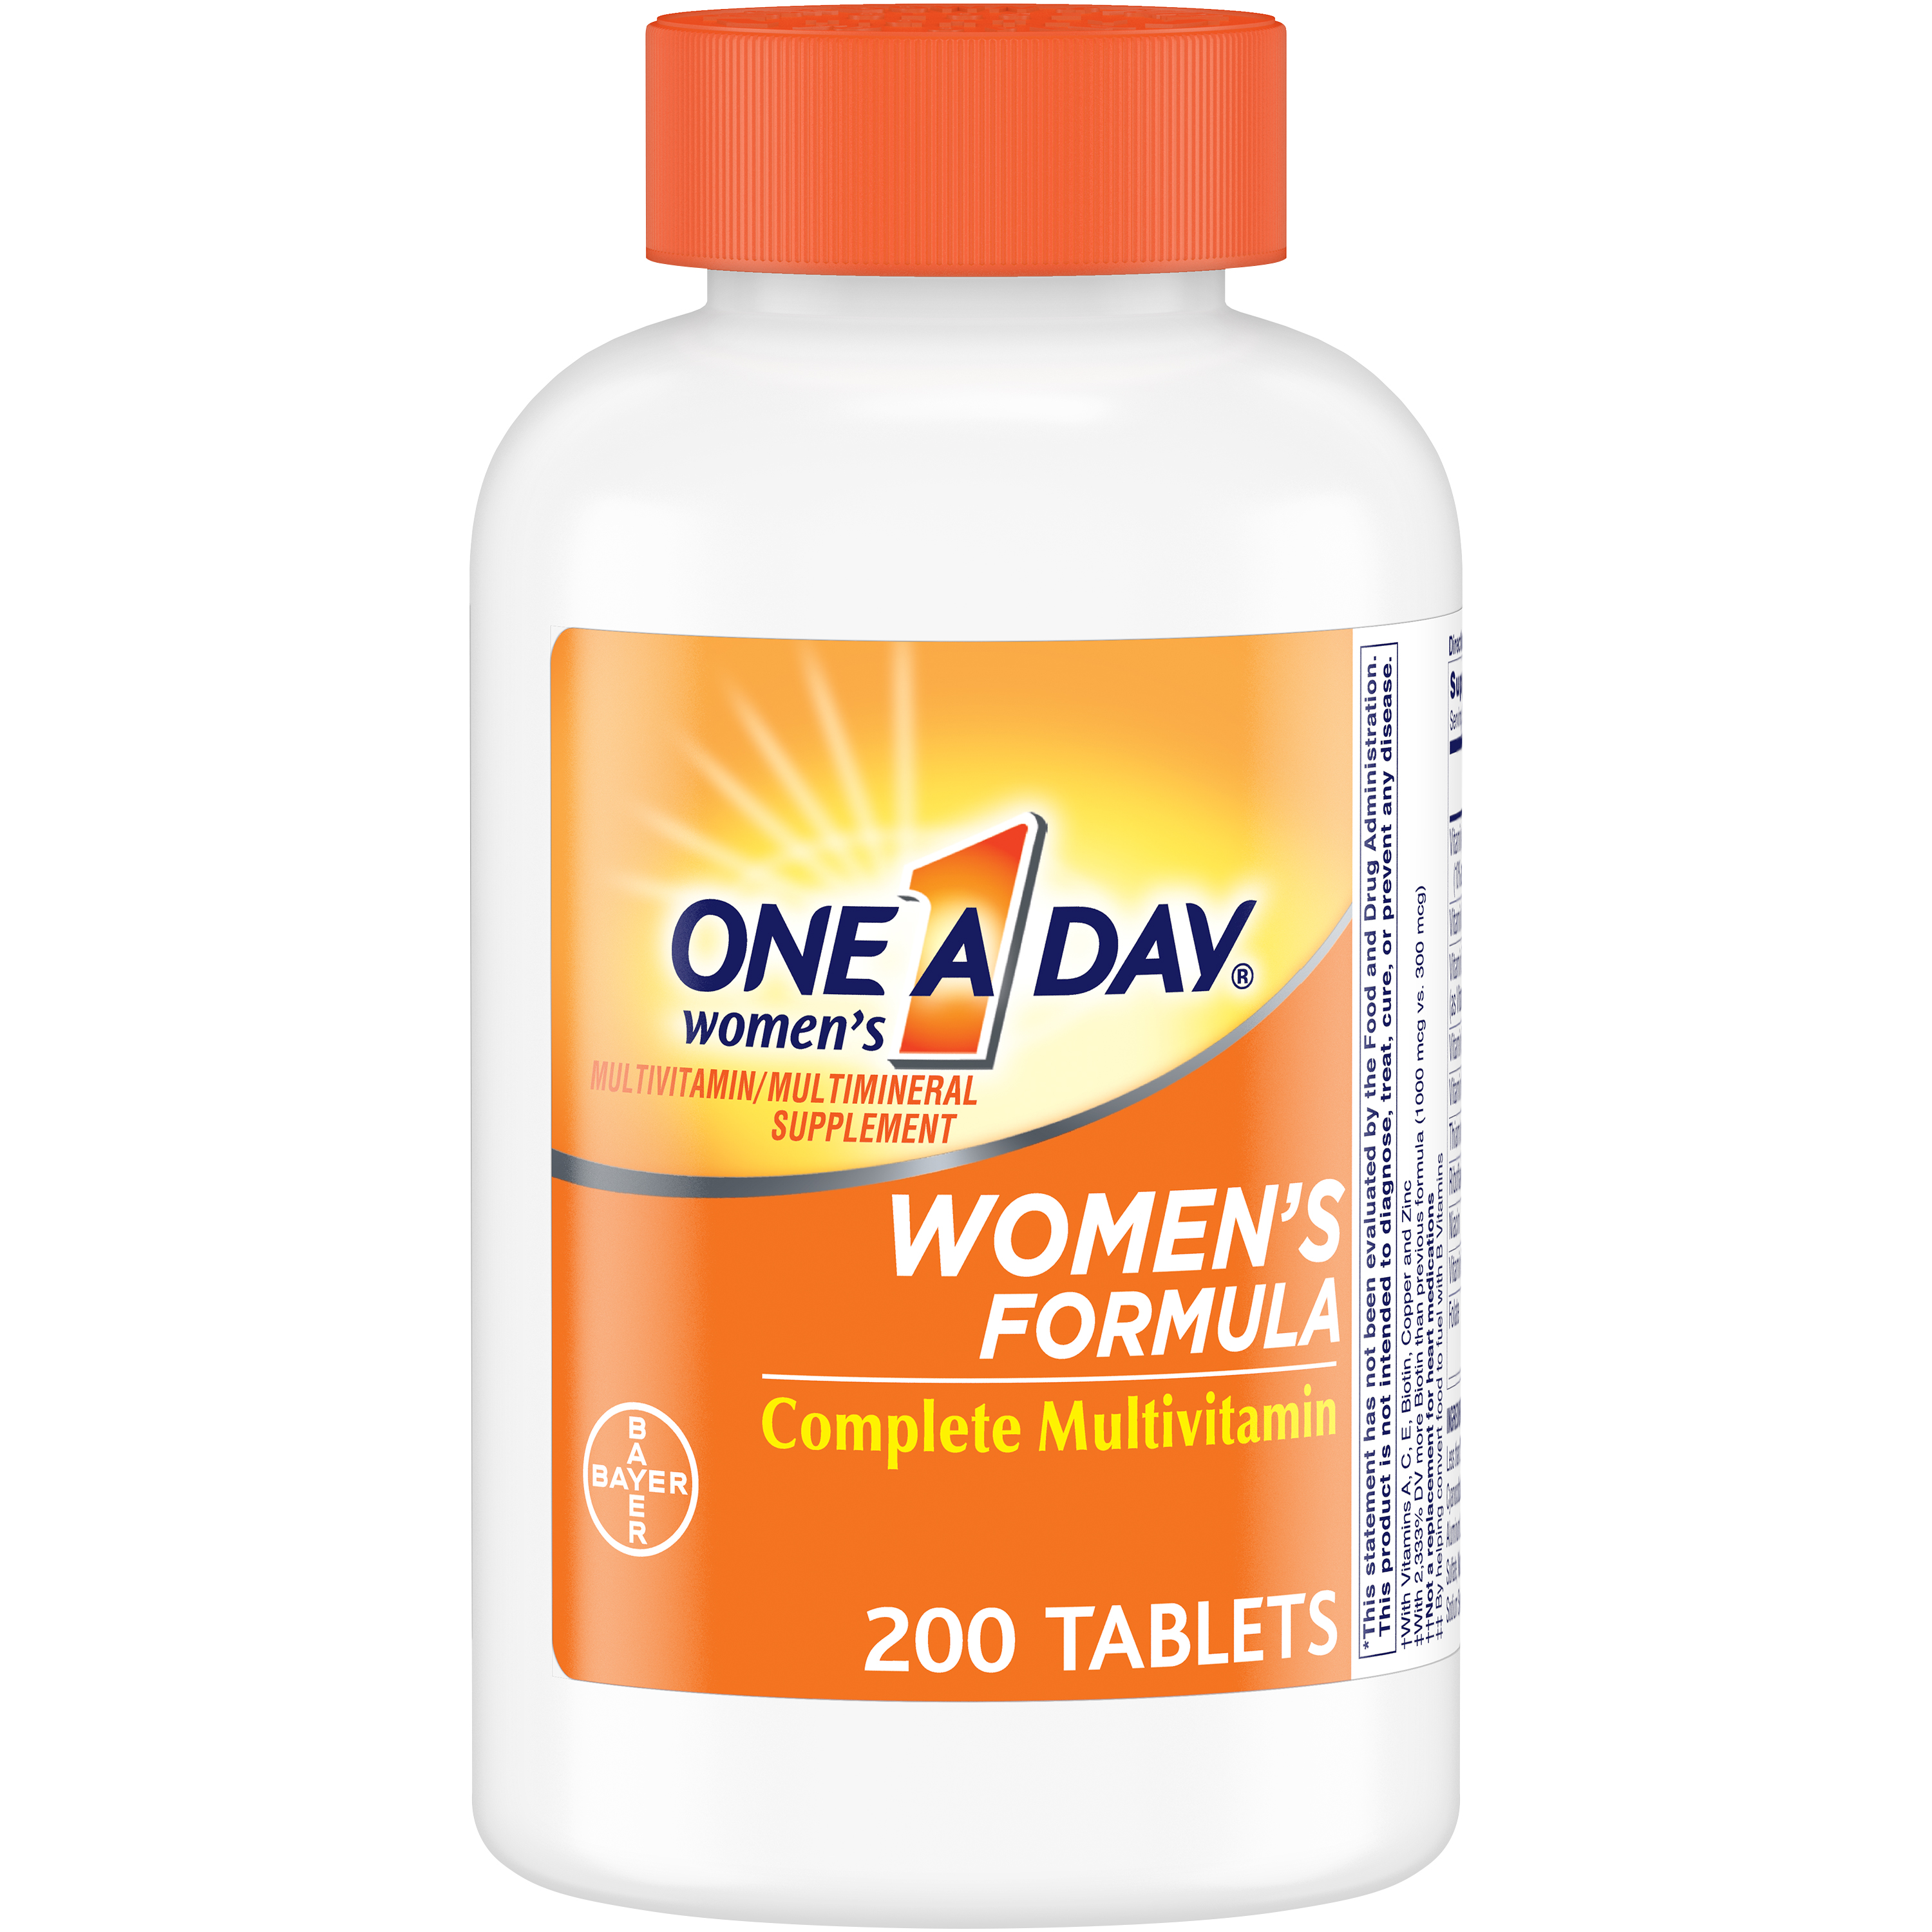 One A Day Women's Multivitamin Supplements with Vitamins A